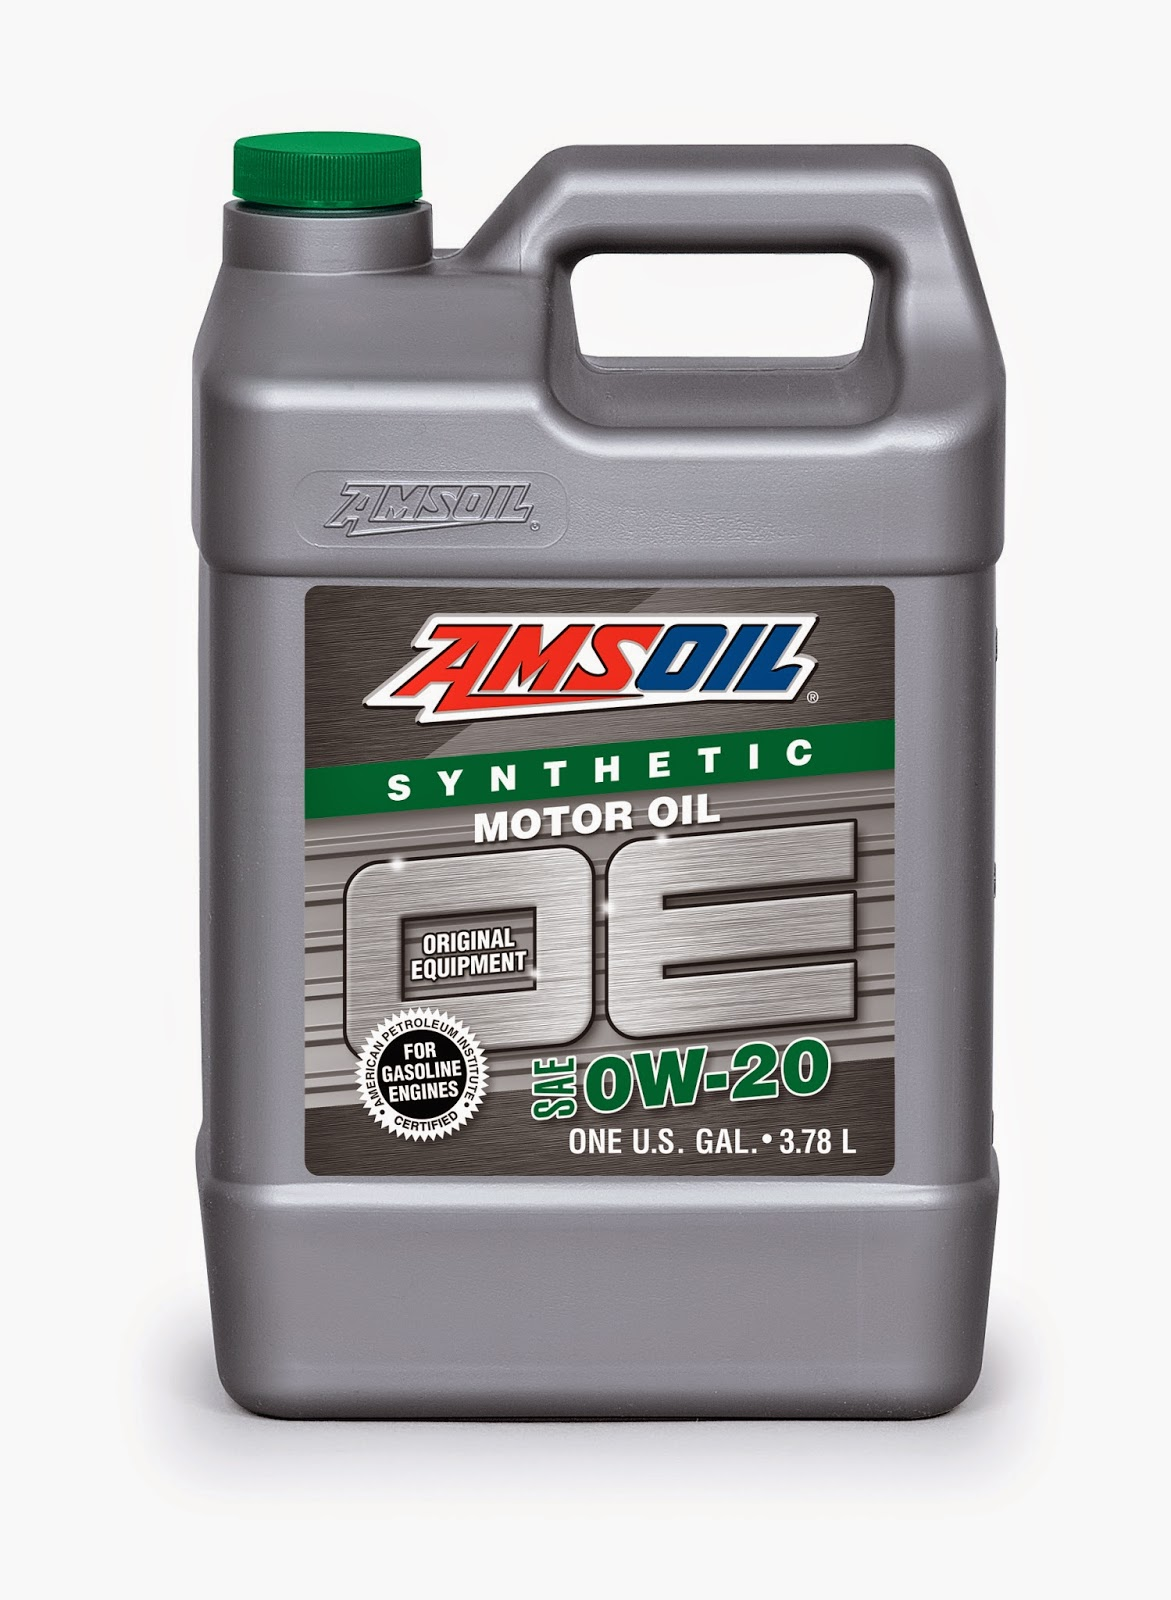 Engine oil additives manufacturers 2017 2018 2019 ford for Top 1 motor oil review